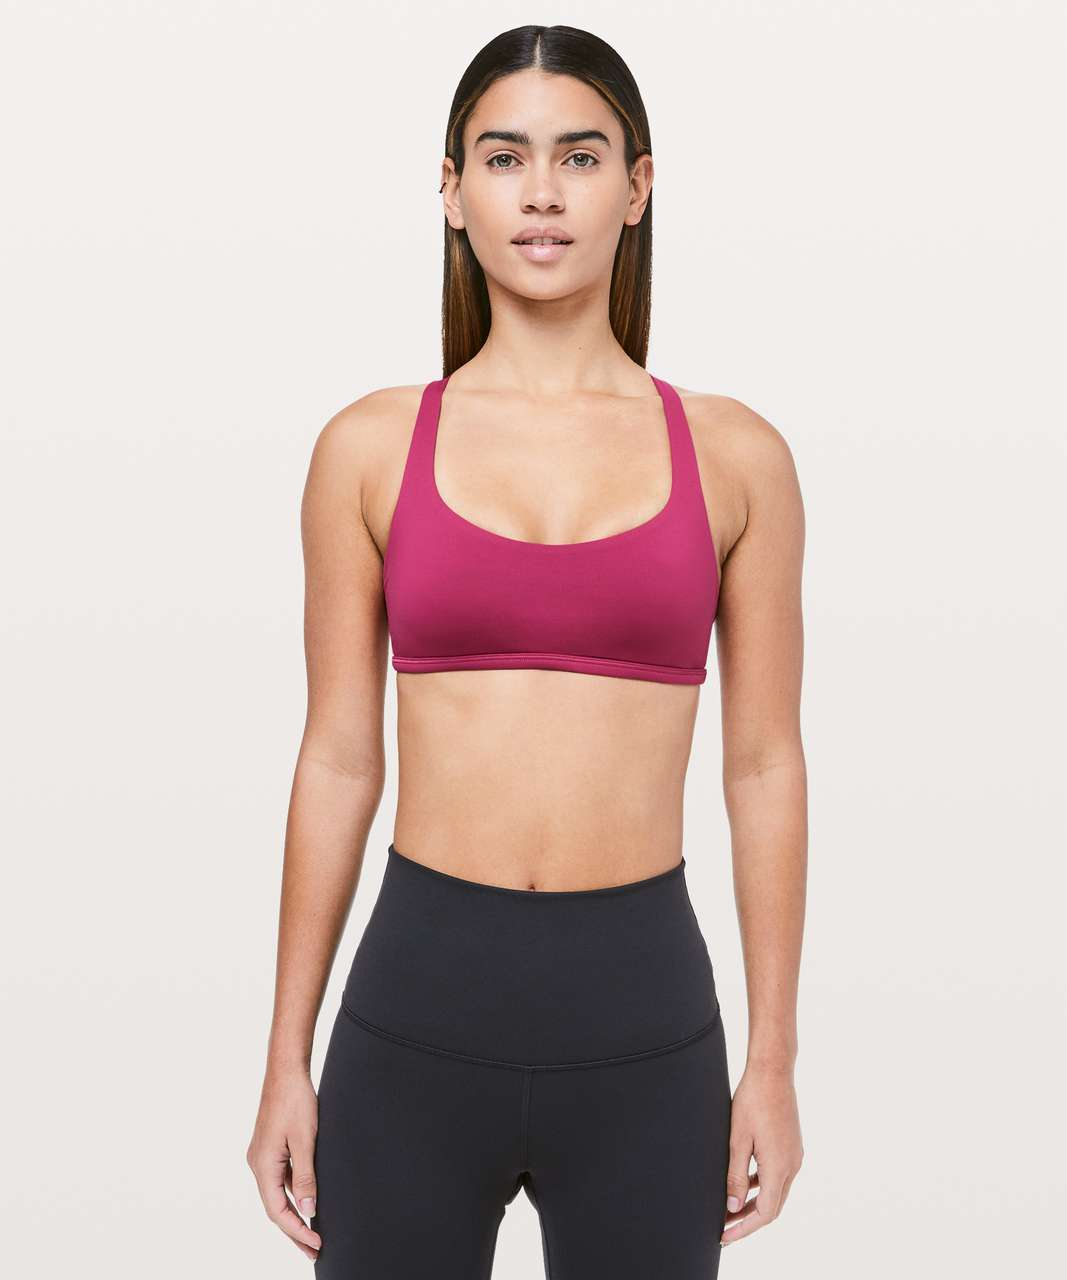 Lululemon Free To Be Bra (Wild) - Violet Red / Neon Pink